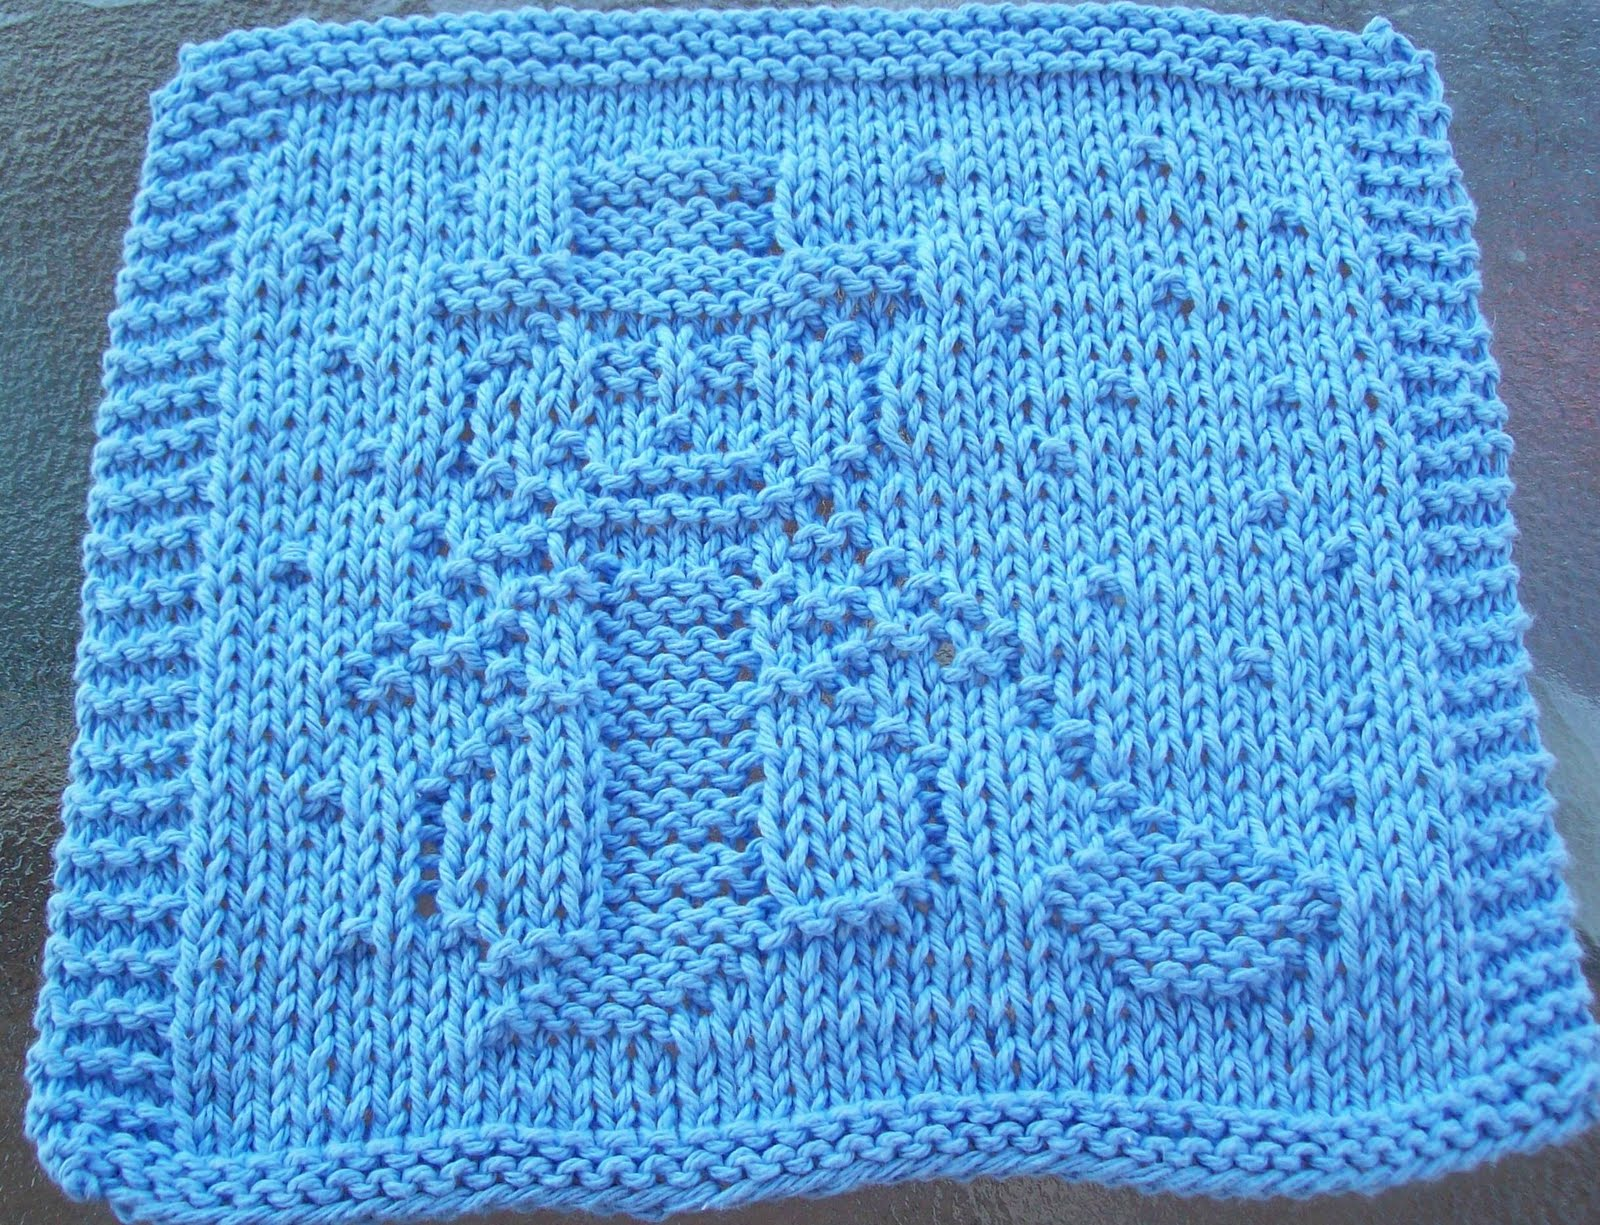 Knit Dishcloths Free Patterns : Knitting Dishcloth Patterns Fish